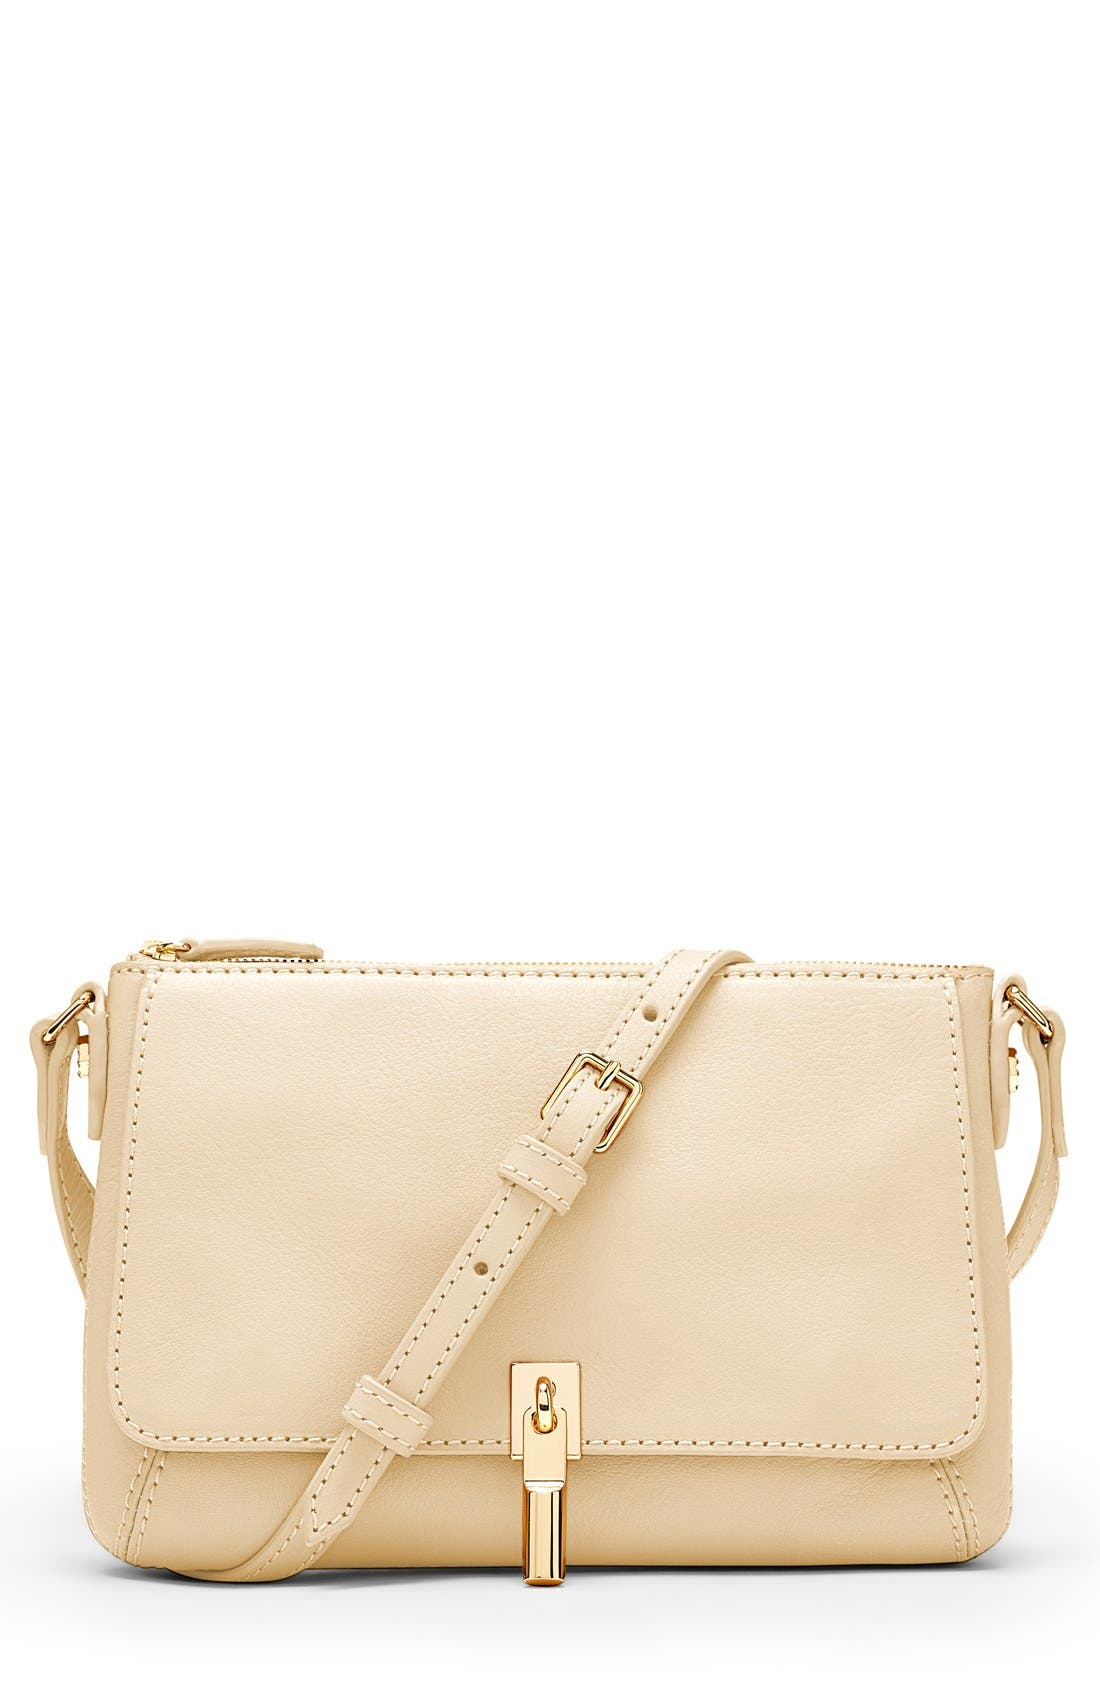 Alternate Image 1 Selected - Elizabeth and James 'Micro Cynnie' Leather Crossbody Bag